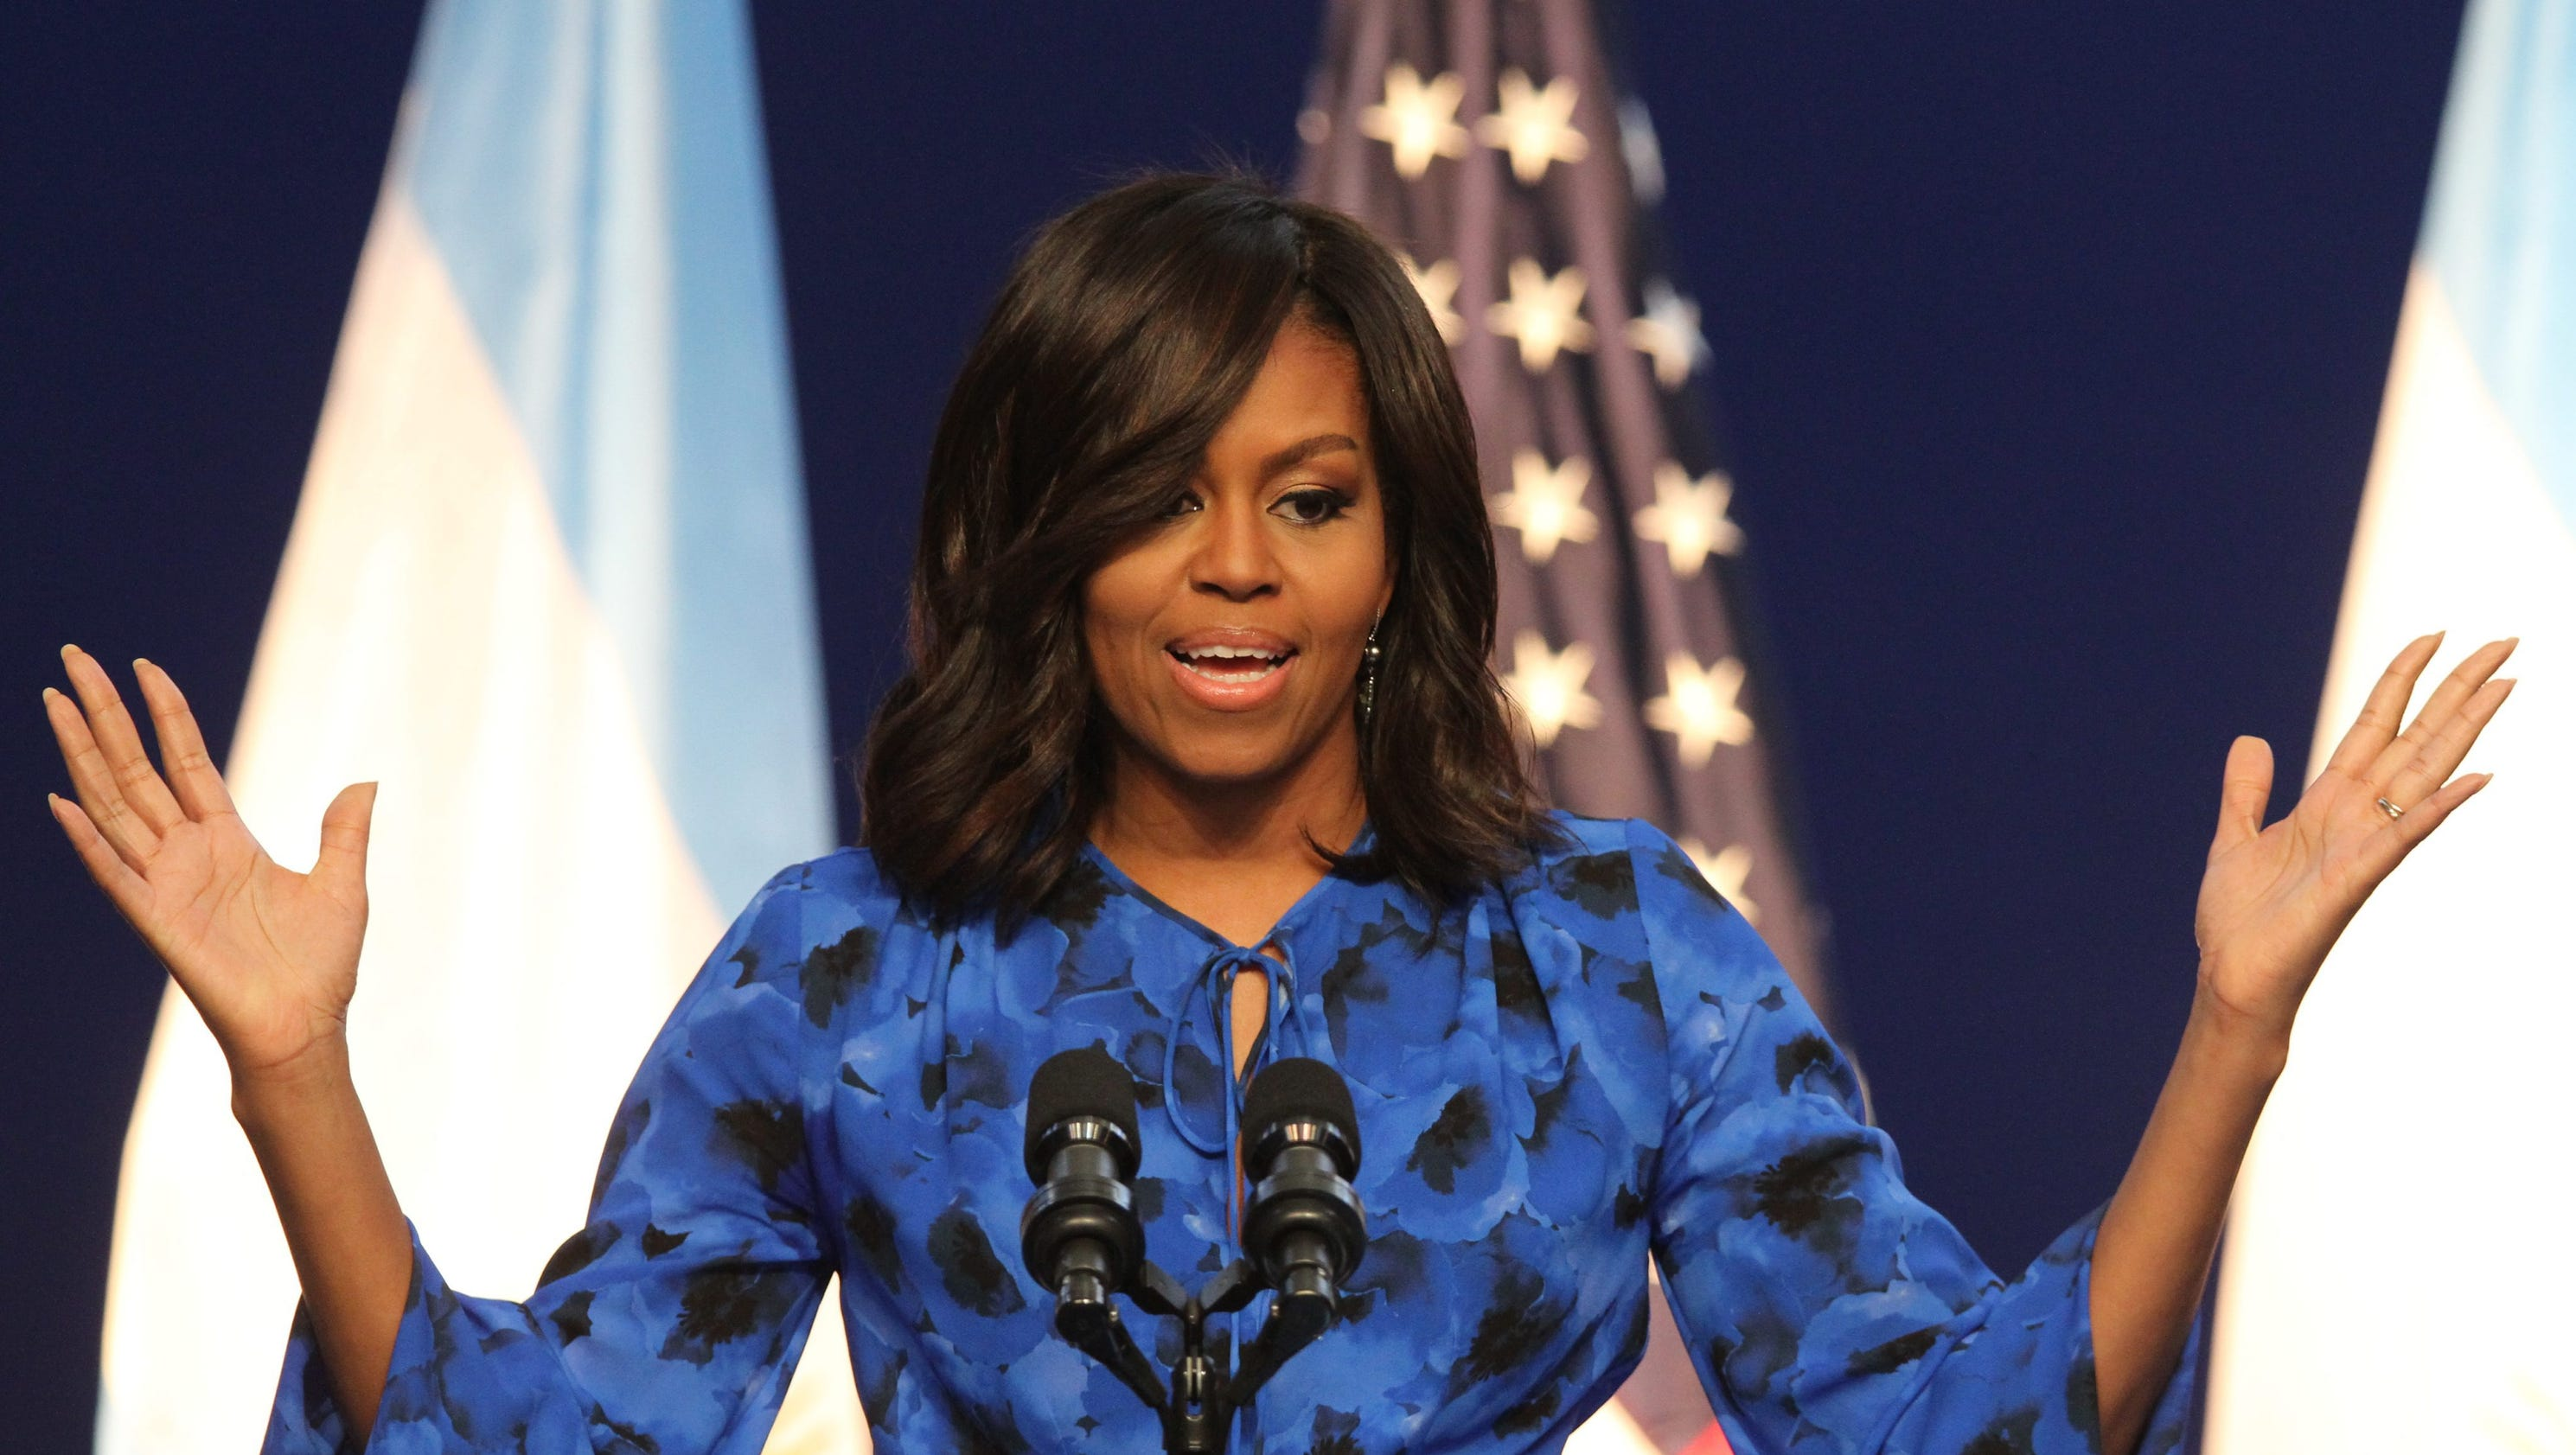 Blue City Morocco Michelle Obama Blunt On Indian Issues To Give